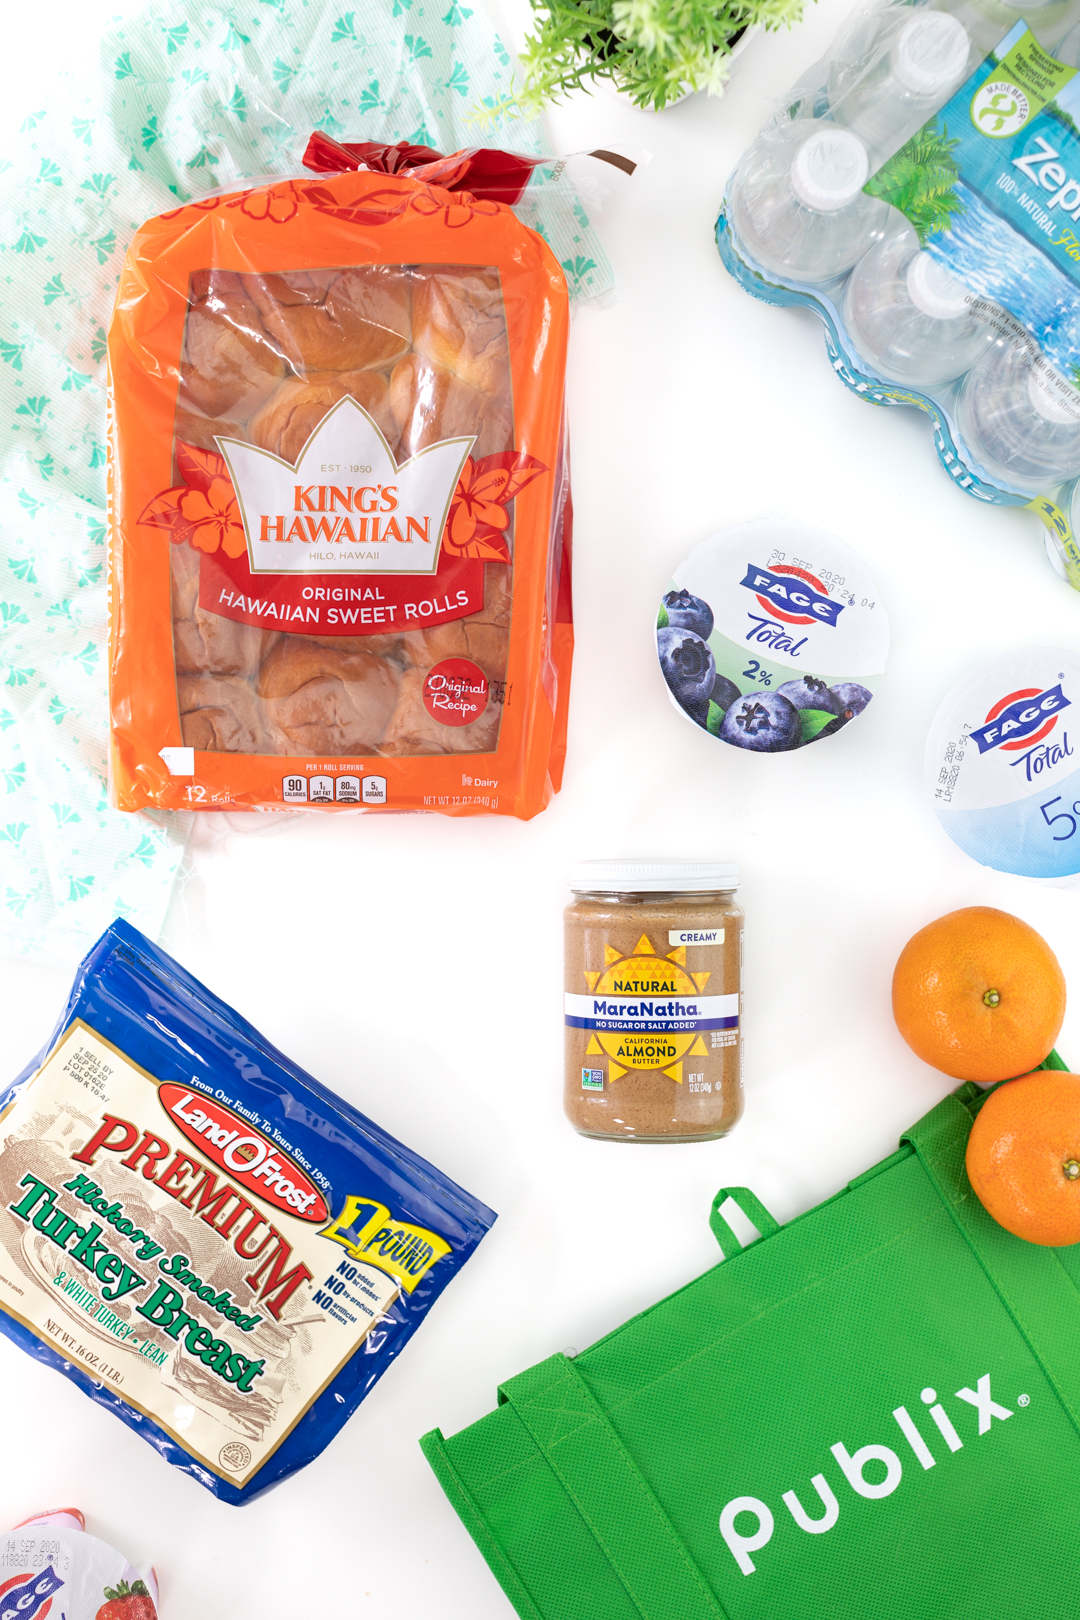 easy lunch ingredients for kids from publix. Publix green shopping bag.